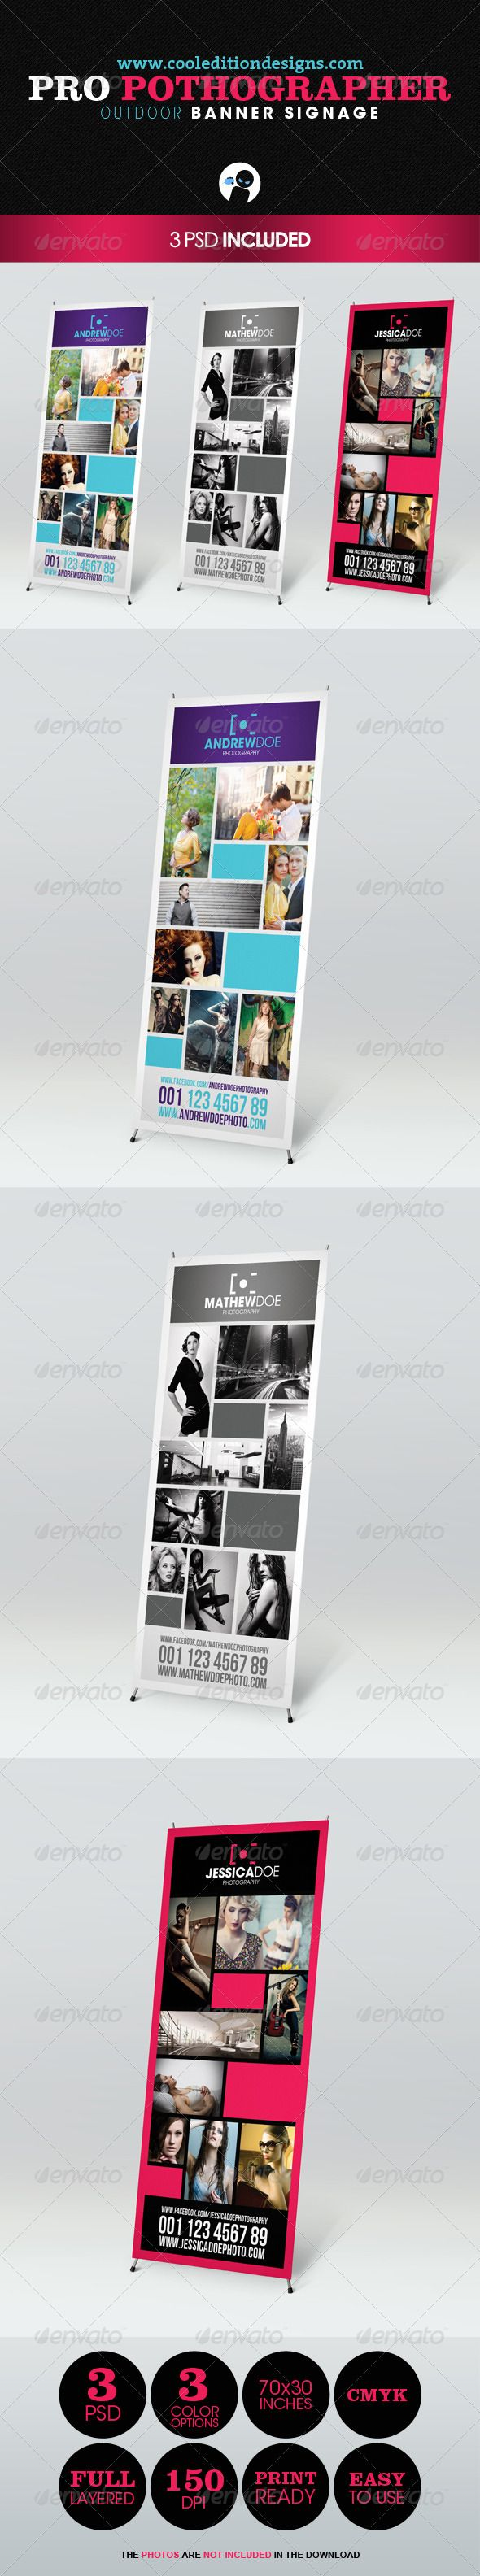 Pro Photographer Outdoor Banner Signage 1 | $6